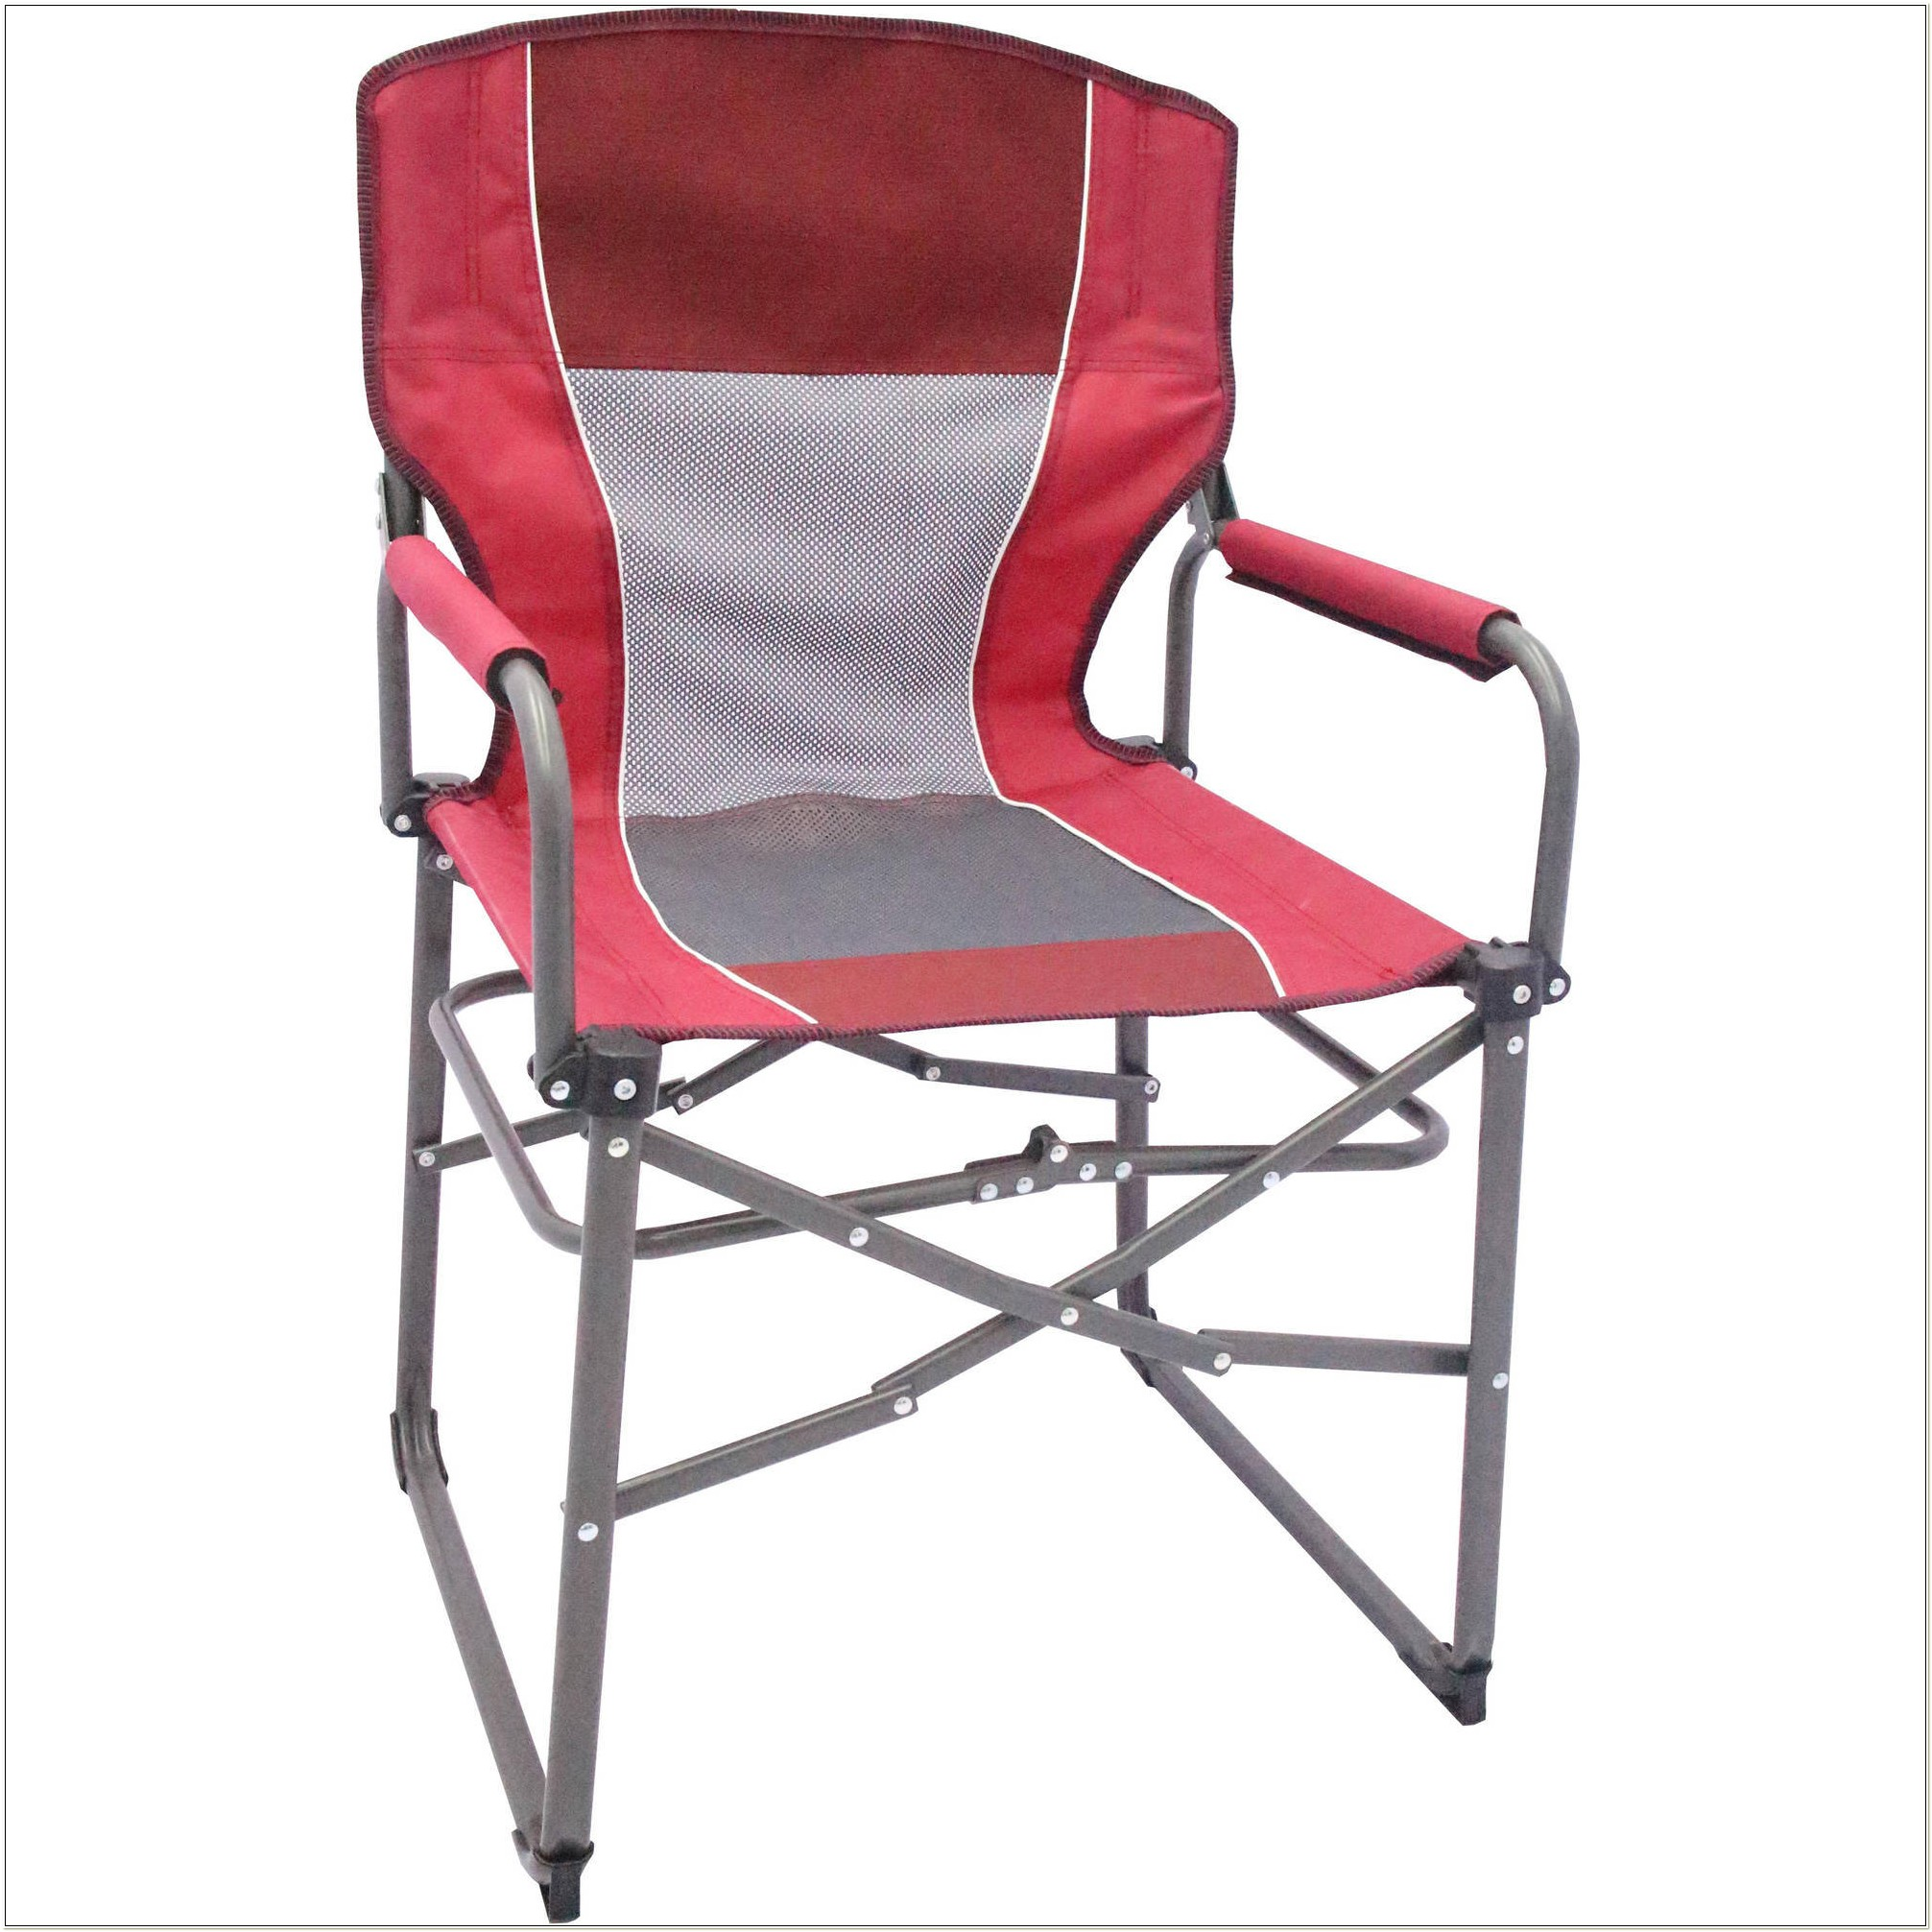 Campsmart Portable Directors Chair